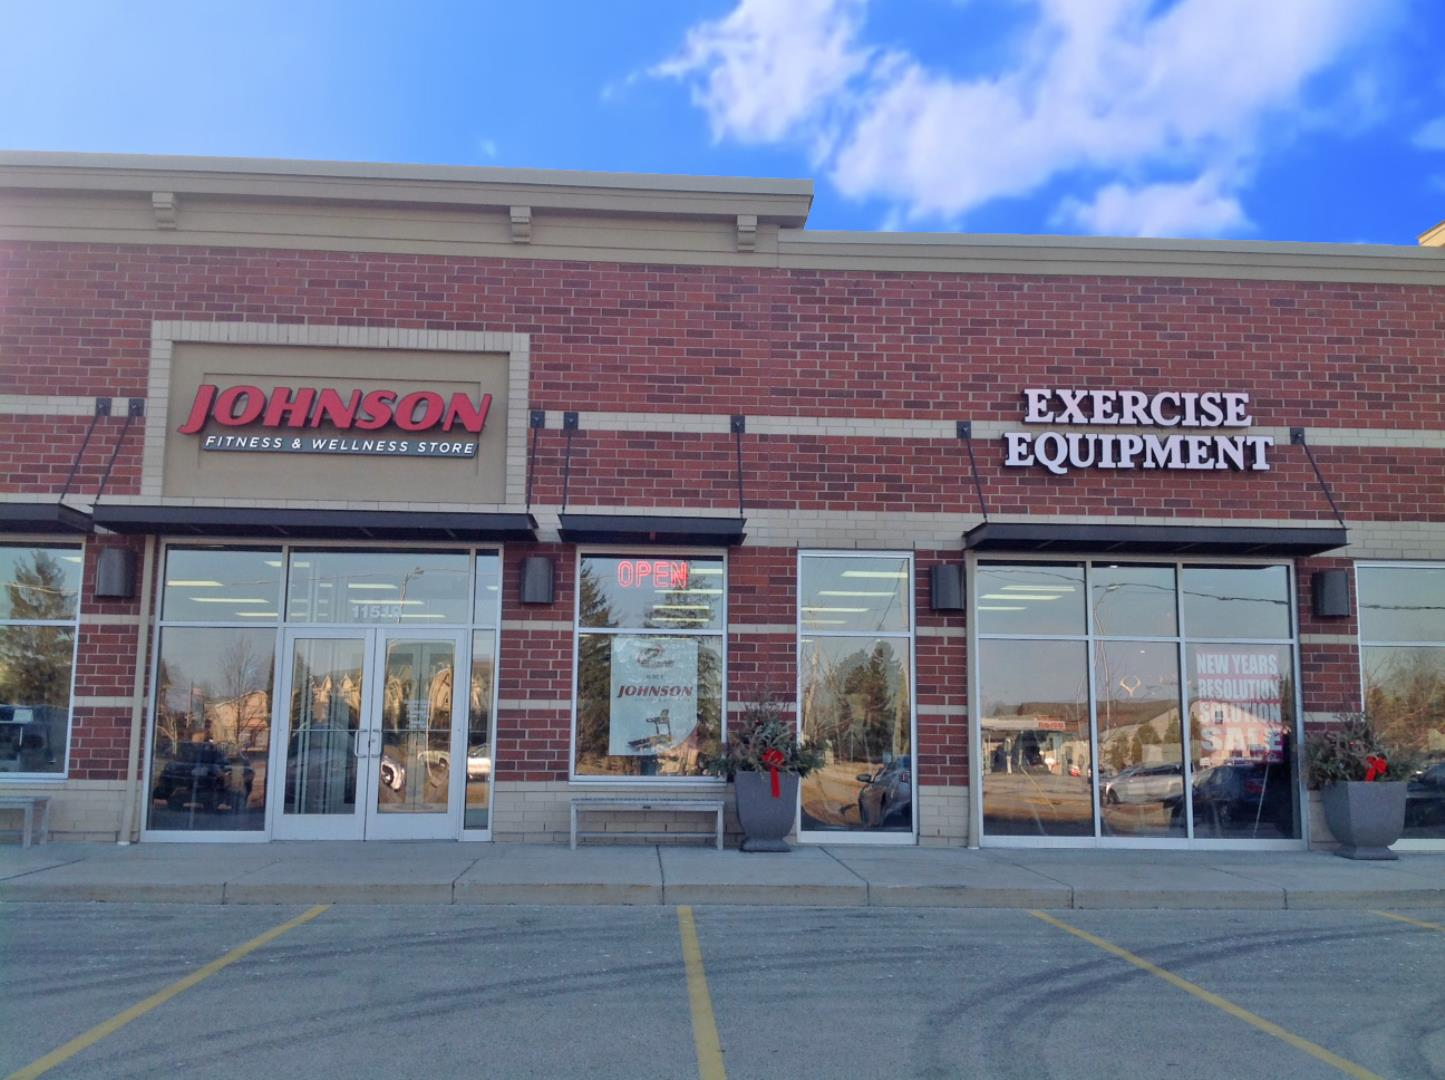 Johnson Fitness & Wellness - Mequon, WI